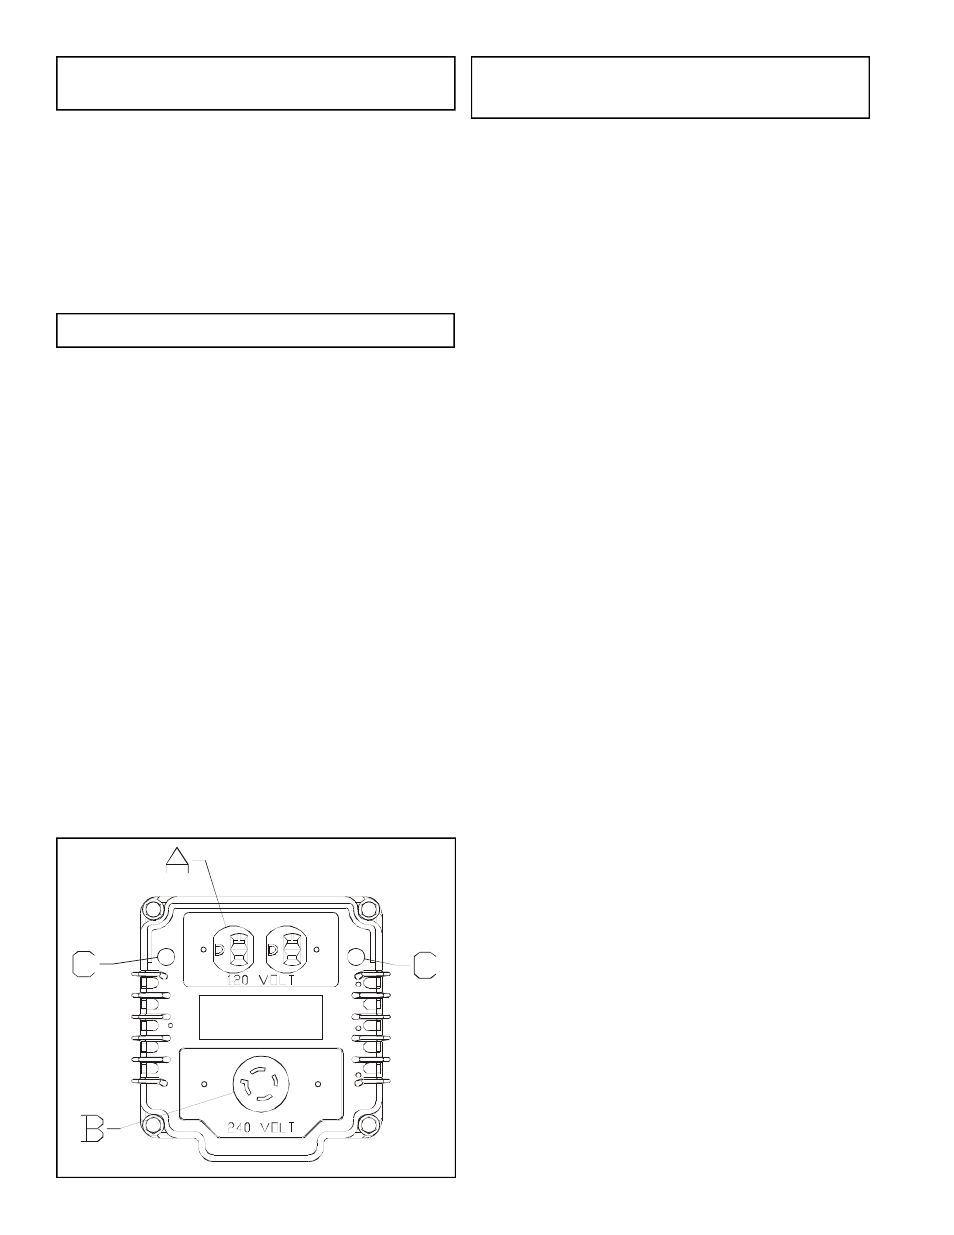 Placa lateral | Powermate Maxa 5000 ER PM0525202.02 User Manual | Page 4 /